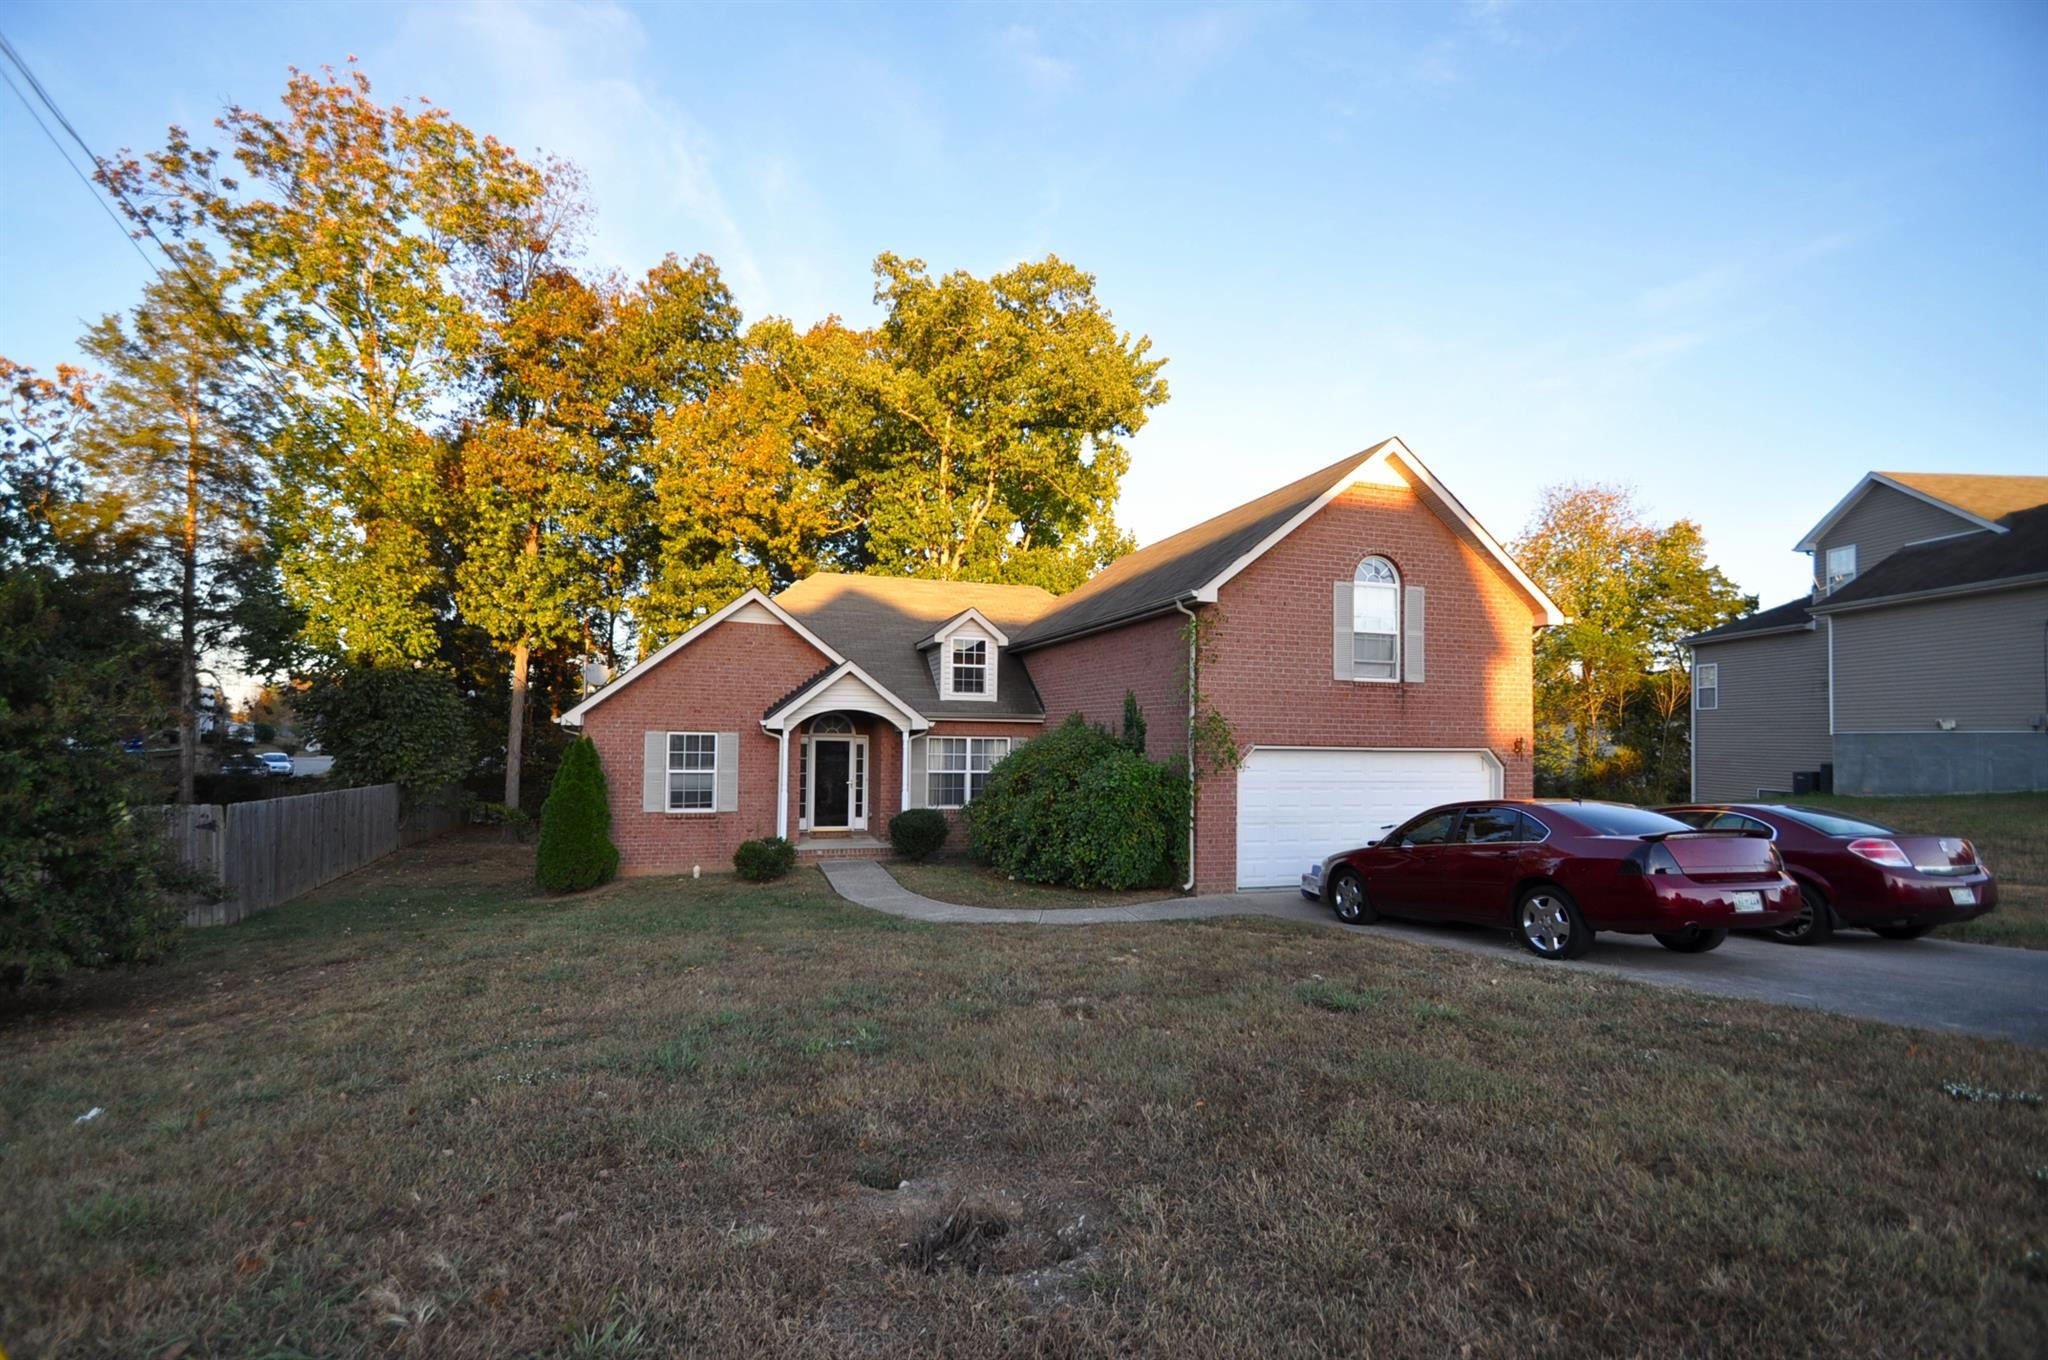 139 Mary Joe Martin Dr, La Vergne, TN 37086